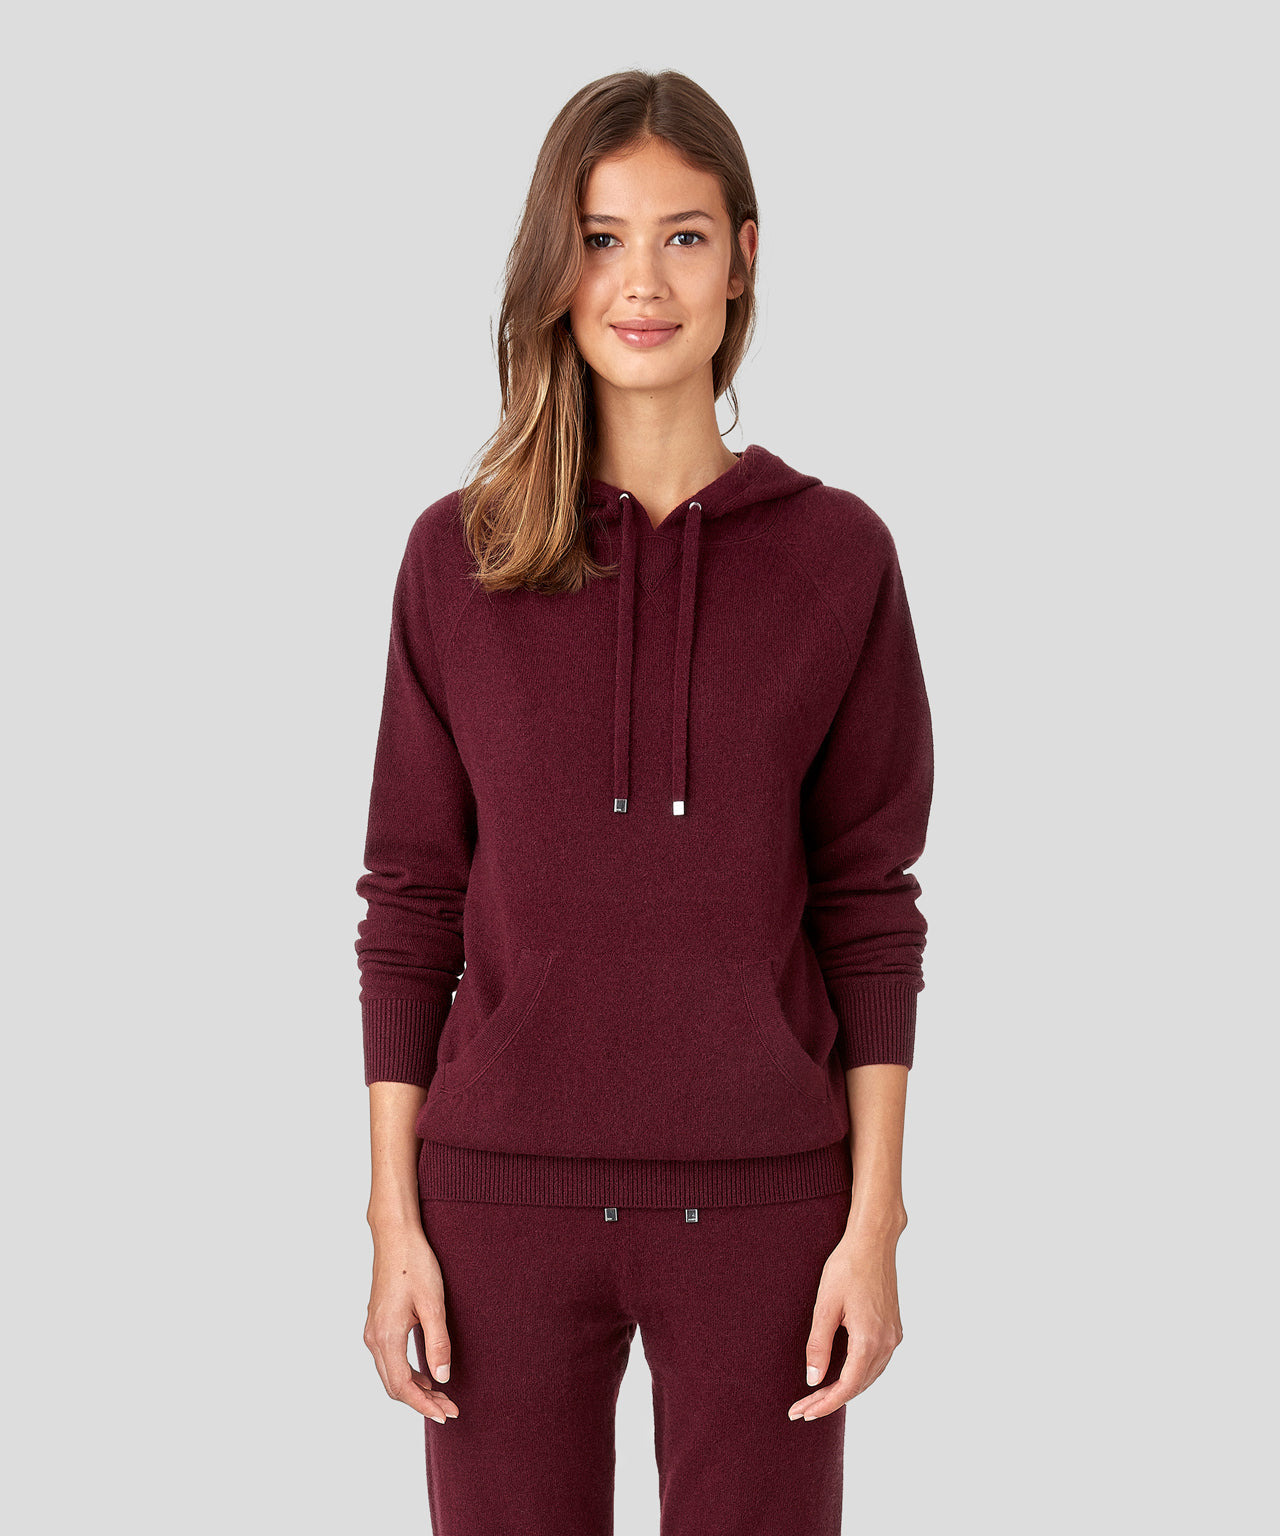 Cashmere Hoodie His For Her - burgundy red